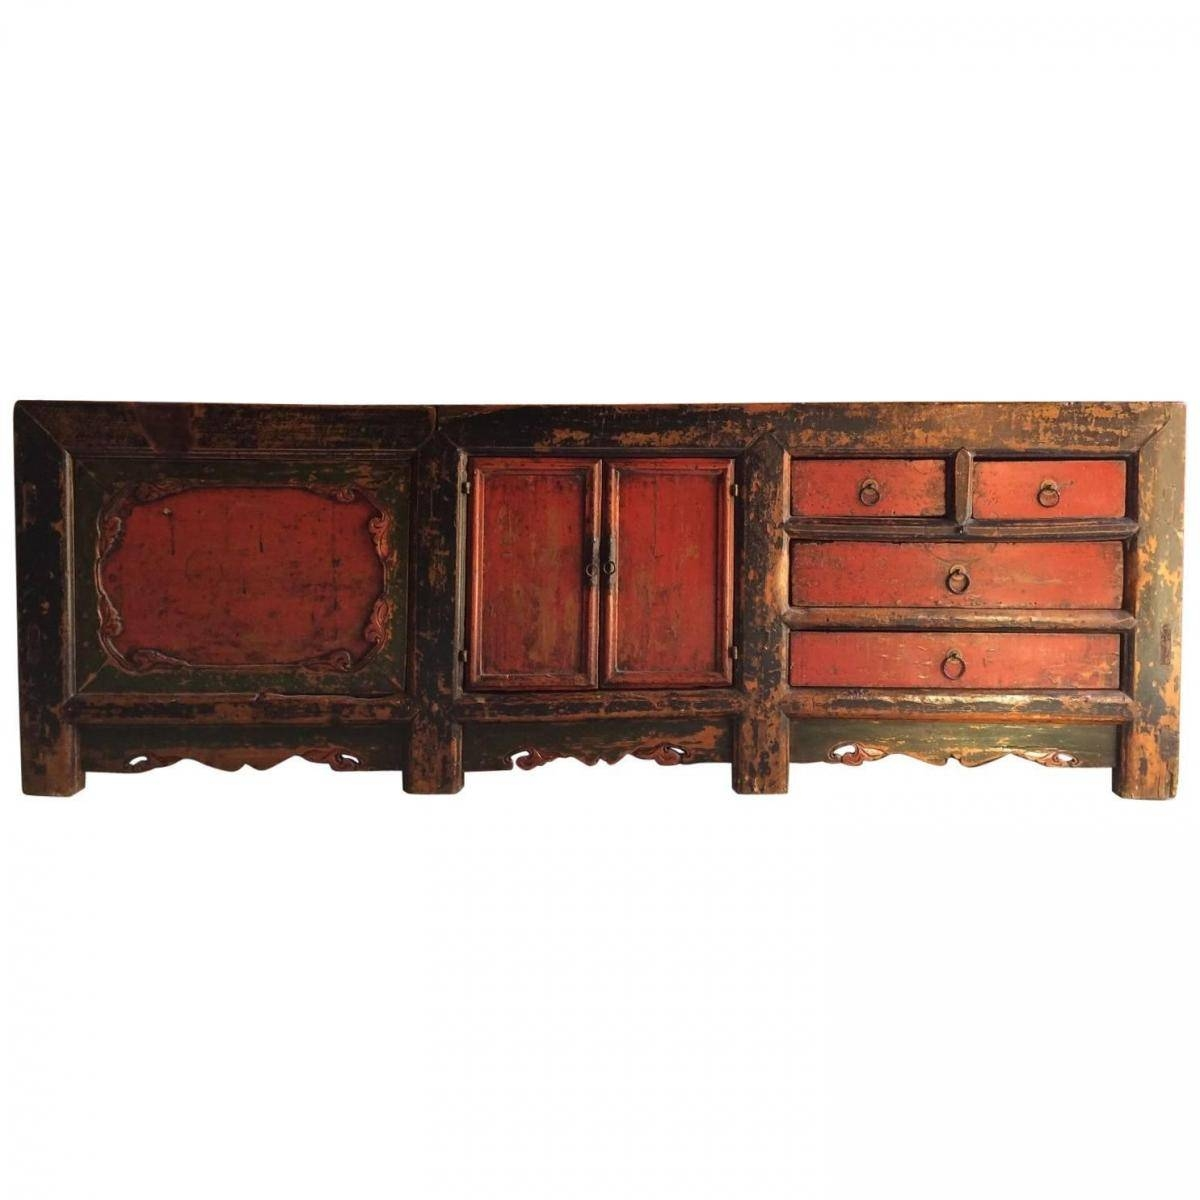 Antique Chinese Grain Store Sideboard, 1780s For Sale At Pamono Throughout Chinese Sideboards (View 7 of 20)